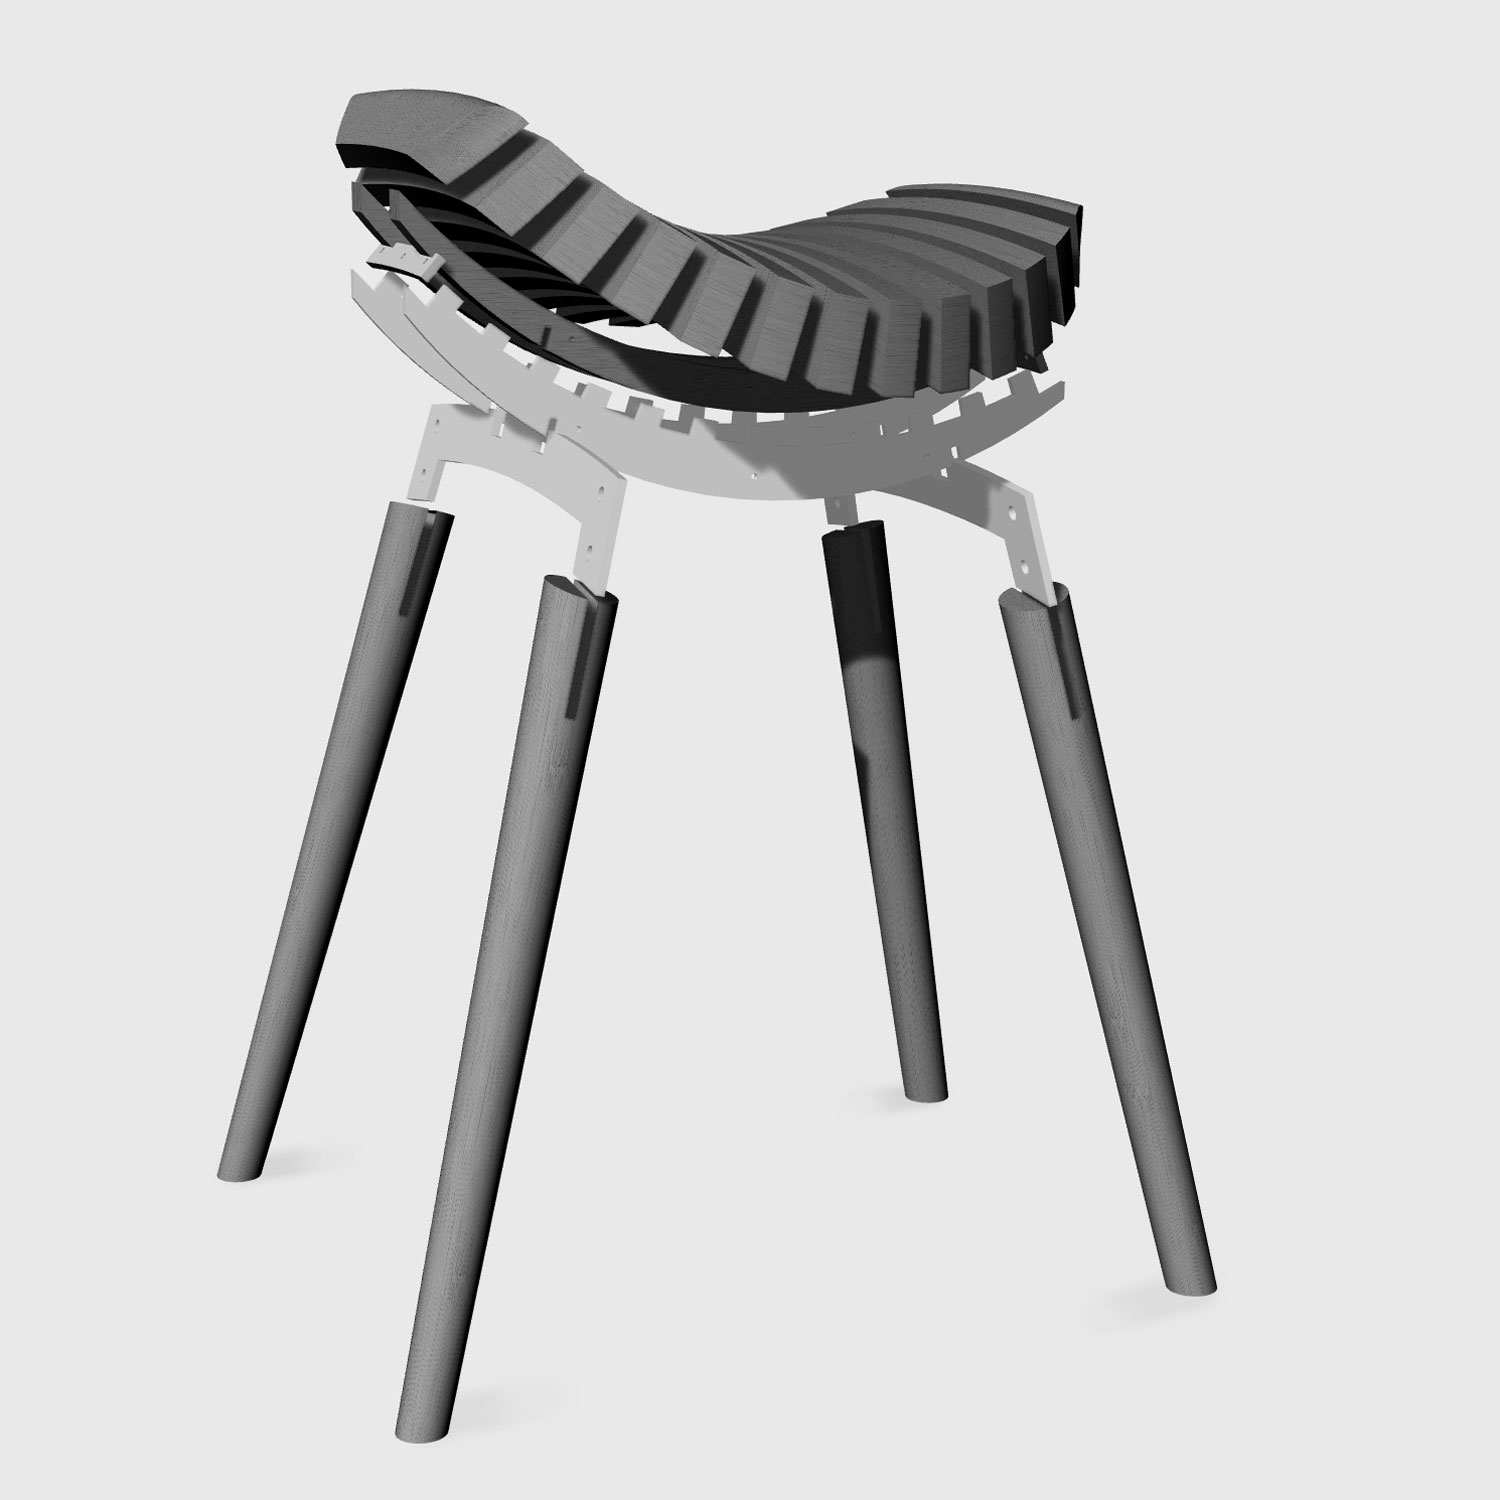 Ane stool exploded 3D rhino image